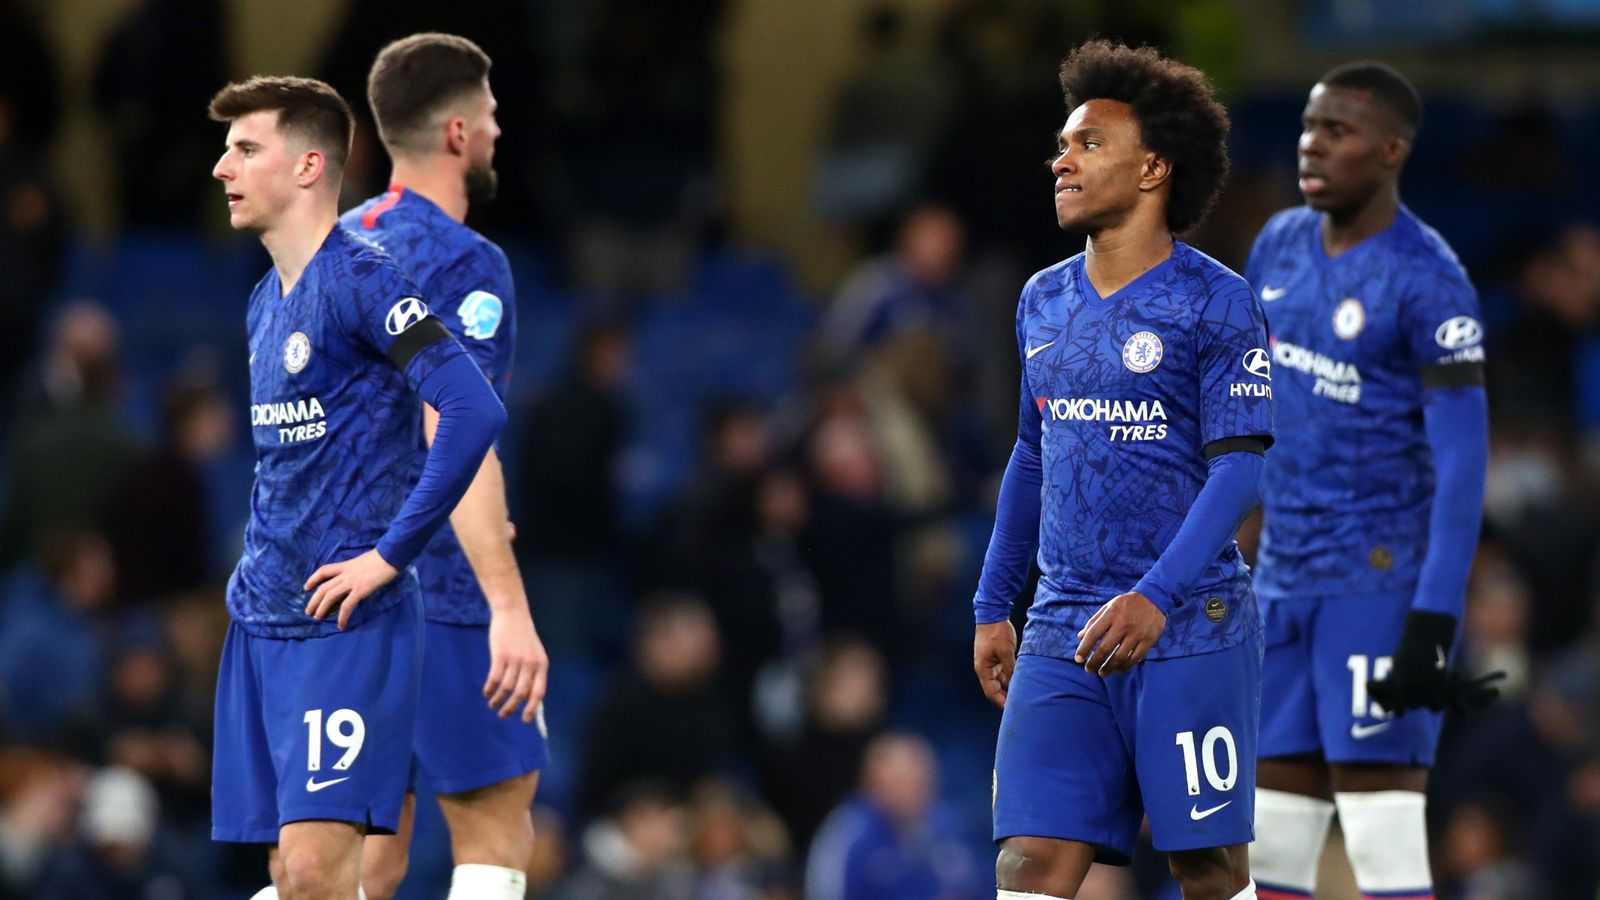 Chelsea's problems under Frank Lampard: What's going wrong?